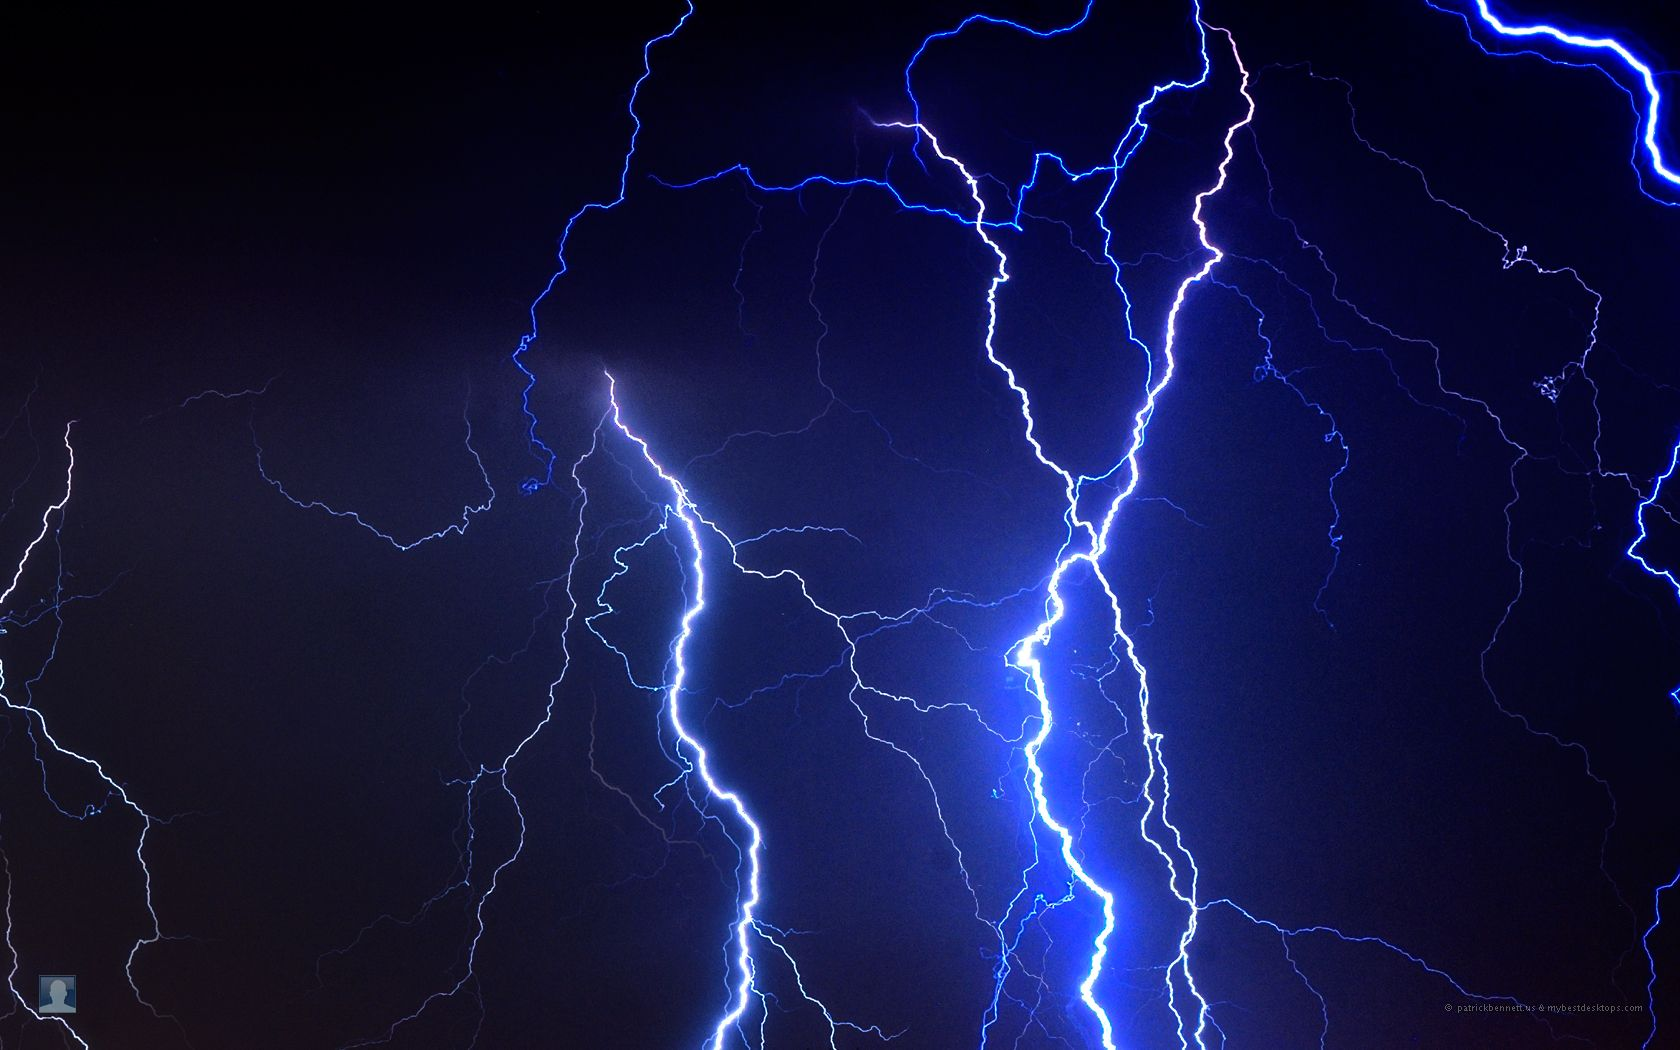 Lightning wallpapers, Comics, HQ Lightning pictures